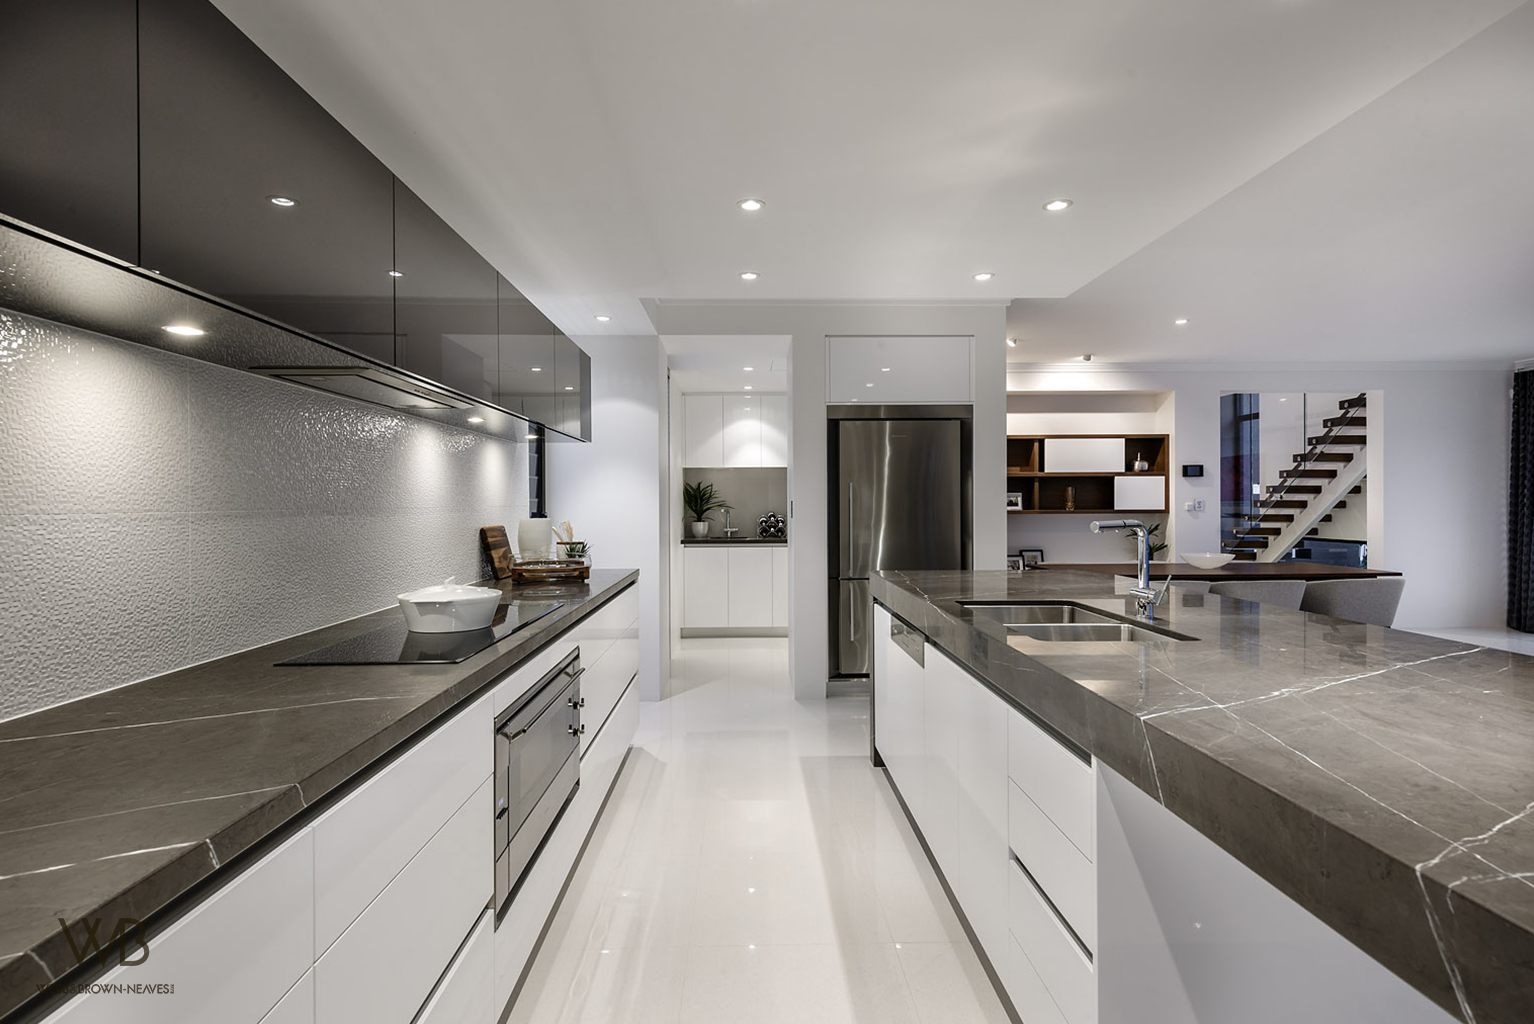 Medallion by Webb & Brown-NeavesLuxurious cabinetry designed by Jess O'Shea Designs in Perth, Western Australia.